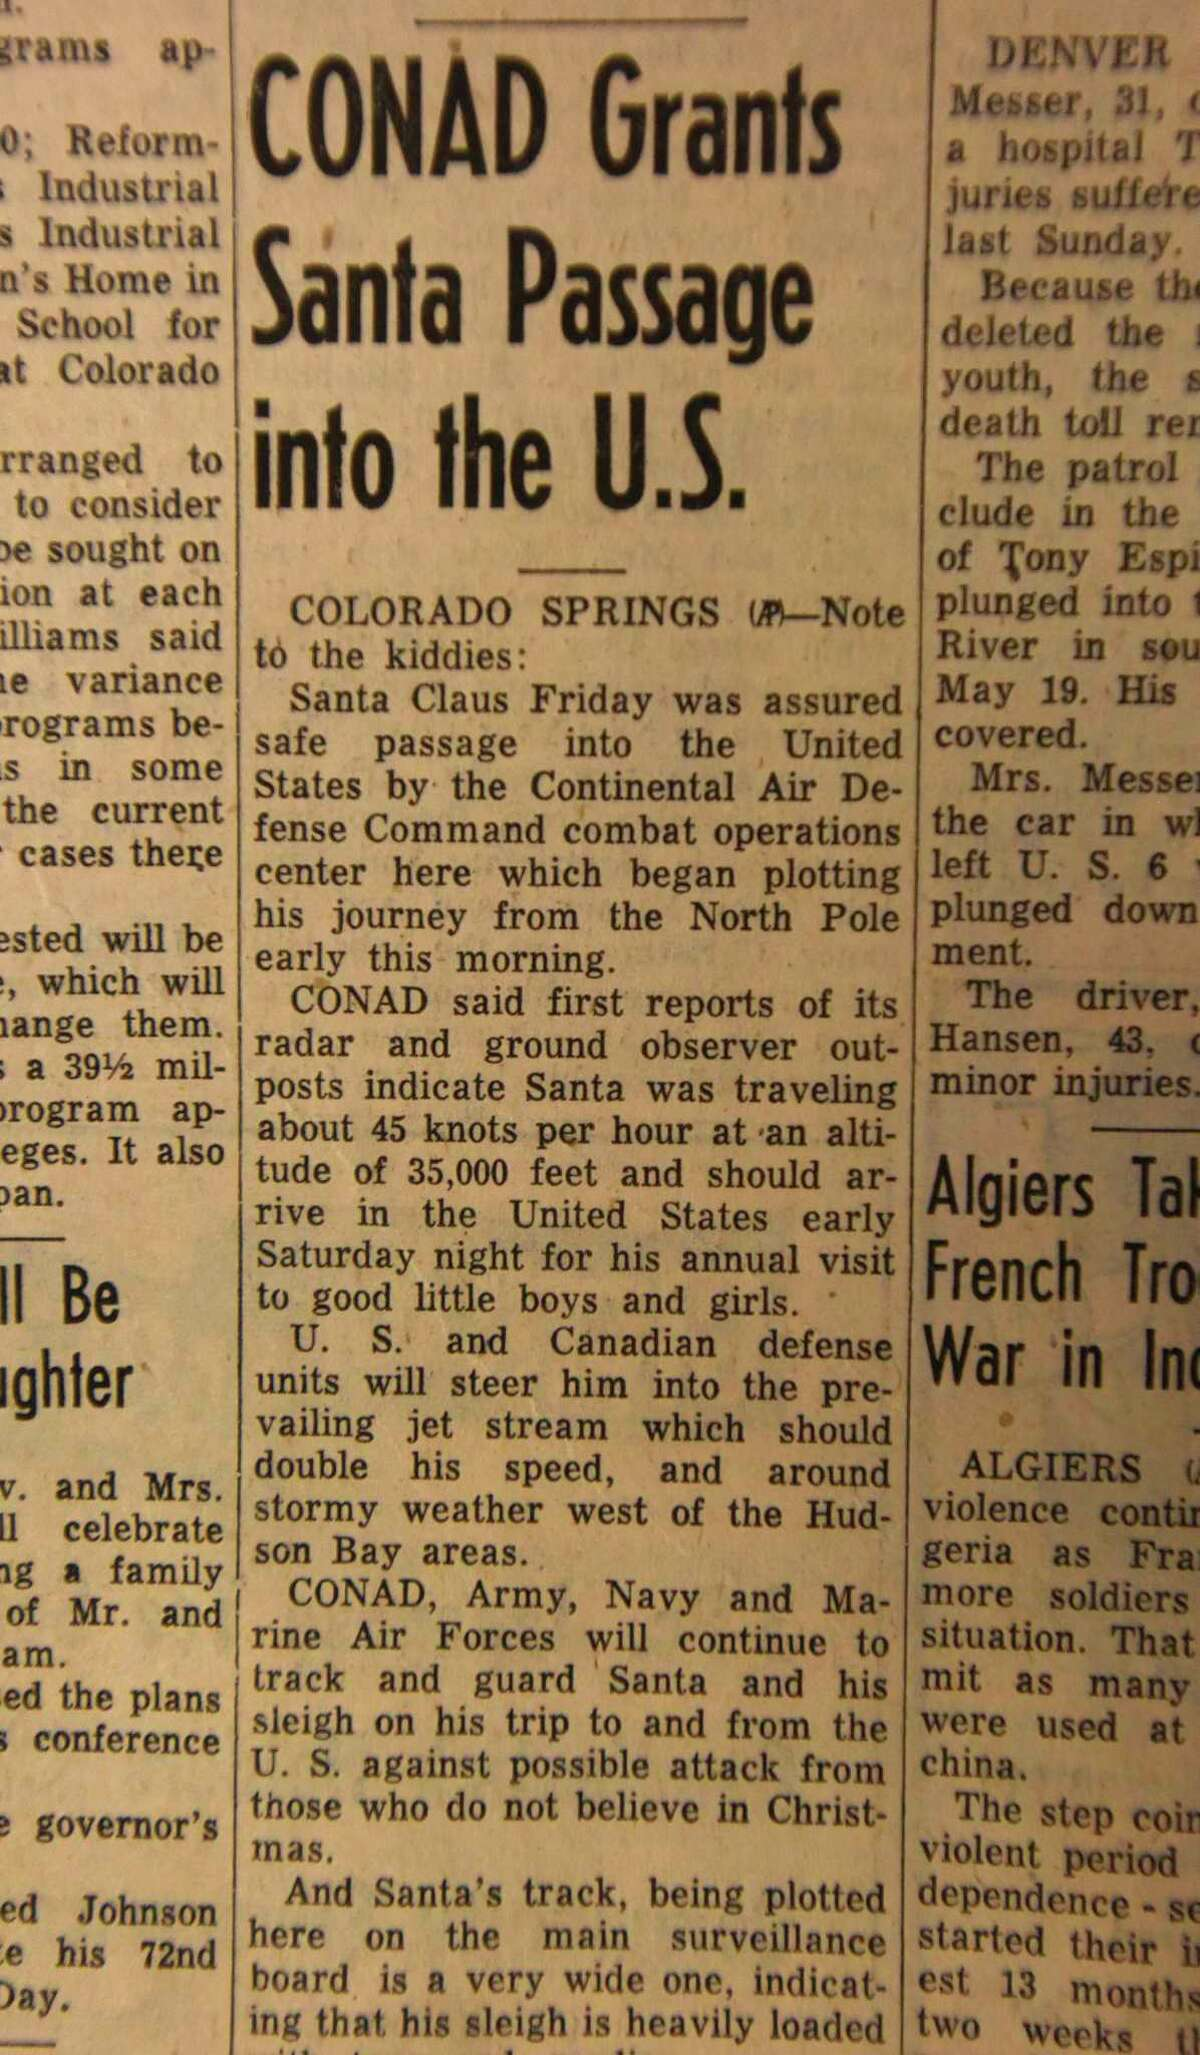 This photo of the front page of The GreeleyTribune in Greeley, Colo., from Dec. 23, 1955, shows an Associated Press story about the Continental Air Defense Command or CONAD tracking Santa Claus. The U.S. military's Santa-tracking program began that year after a newspaper ad invited children to call Santa but inadvertently ran the phone number of CONAD's hotline. Now in its 62nd year, the program is operated by CONAD's successor, the North American Aerospace Defense Command, a U.S.-Canadian military command at Peterson Air Force Base, Colorado. (Josh Polson/The Greeley Tribune via AP)